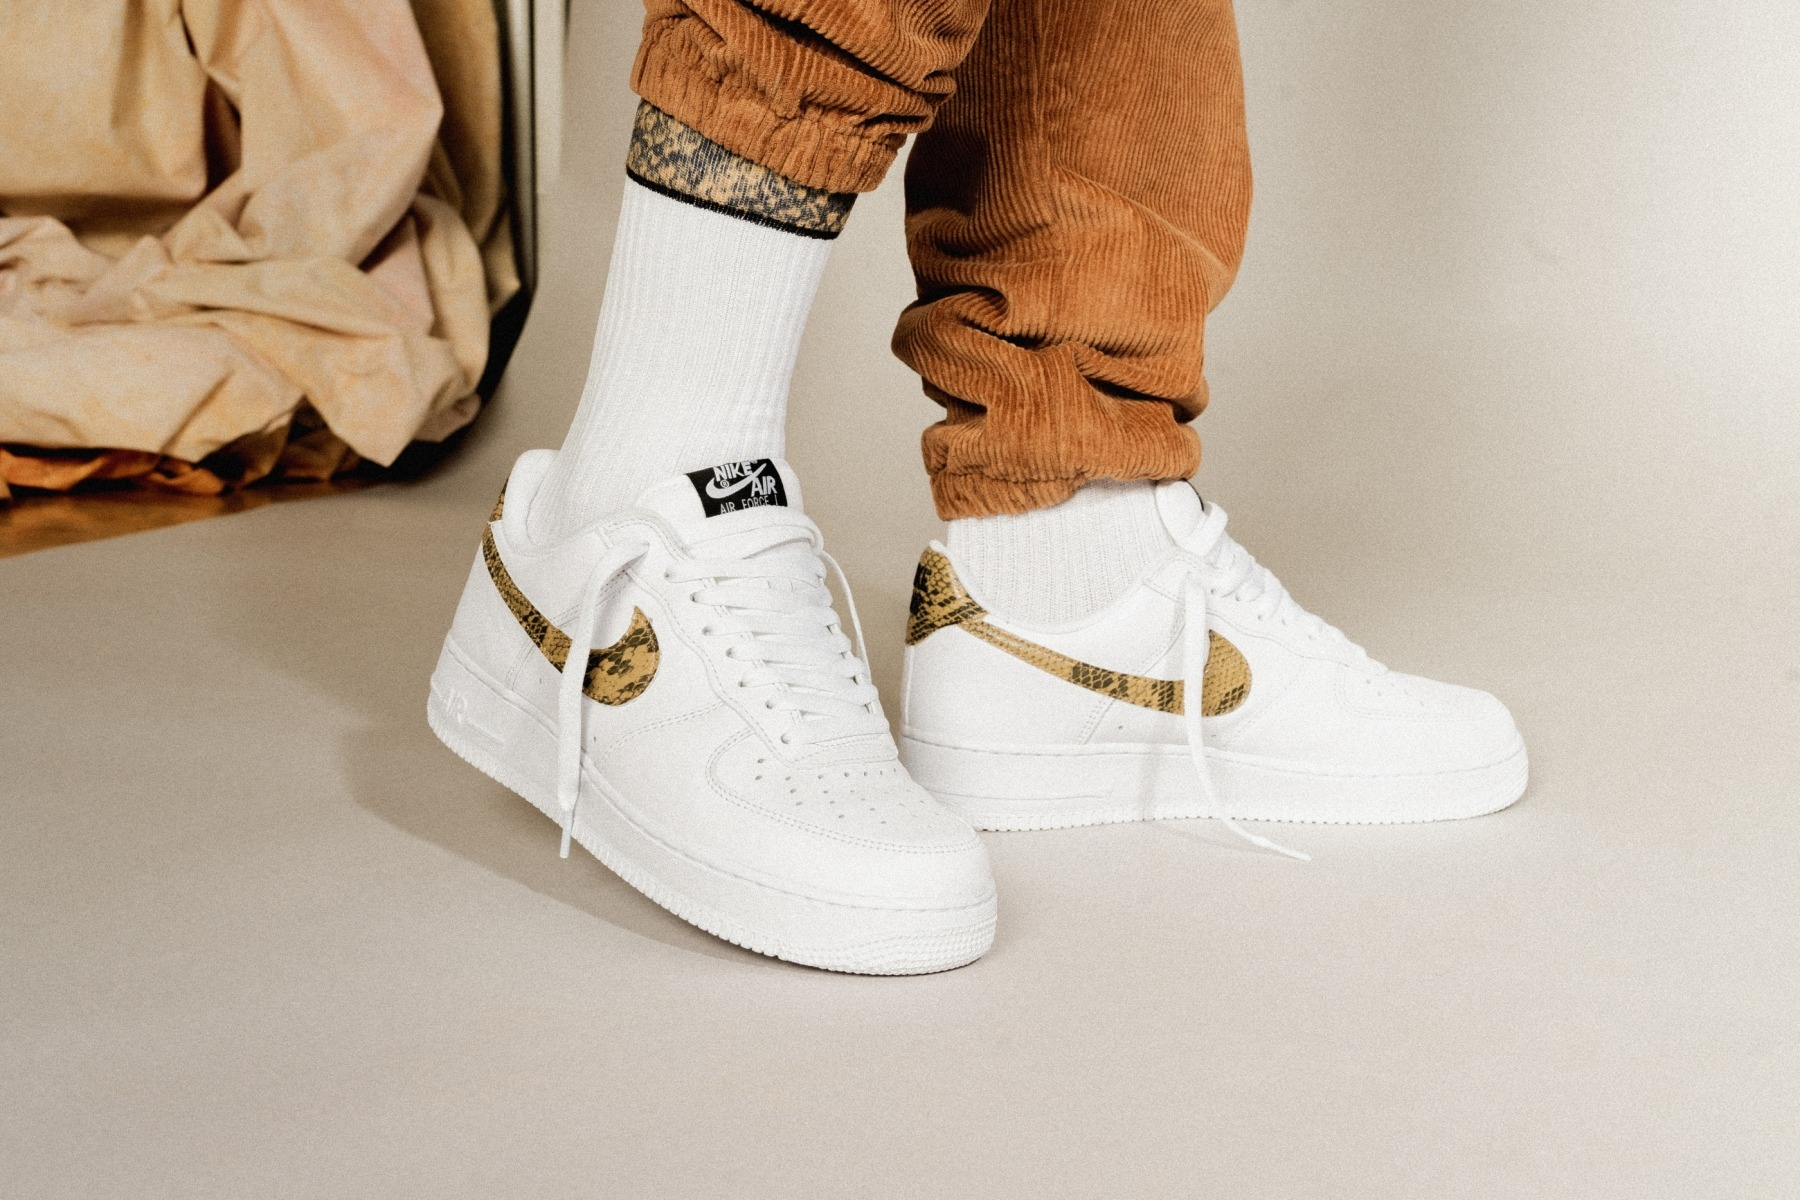 sports shoes 502f9 1570d The story of the Ivory Snake edition of the Air Force 1 goes back to 1996.  That s when the sneaker dropped an Asia exclusive. Given its age and  limited ...